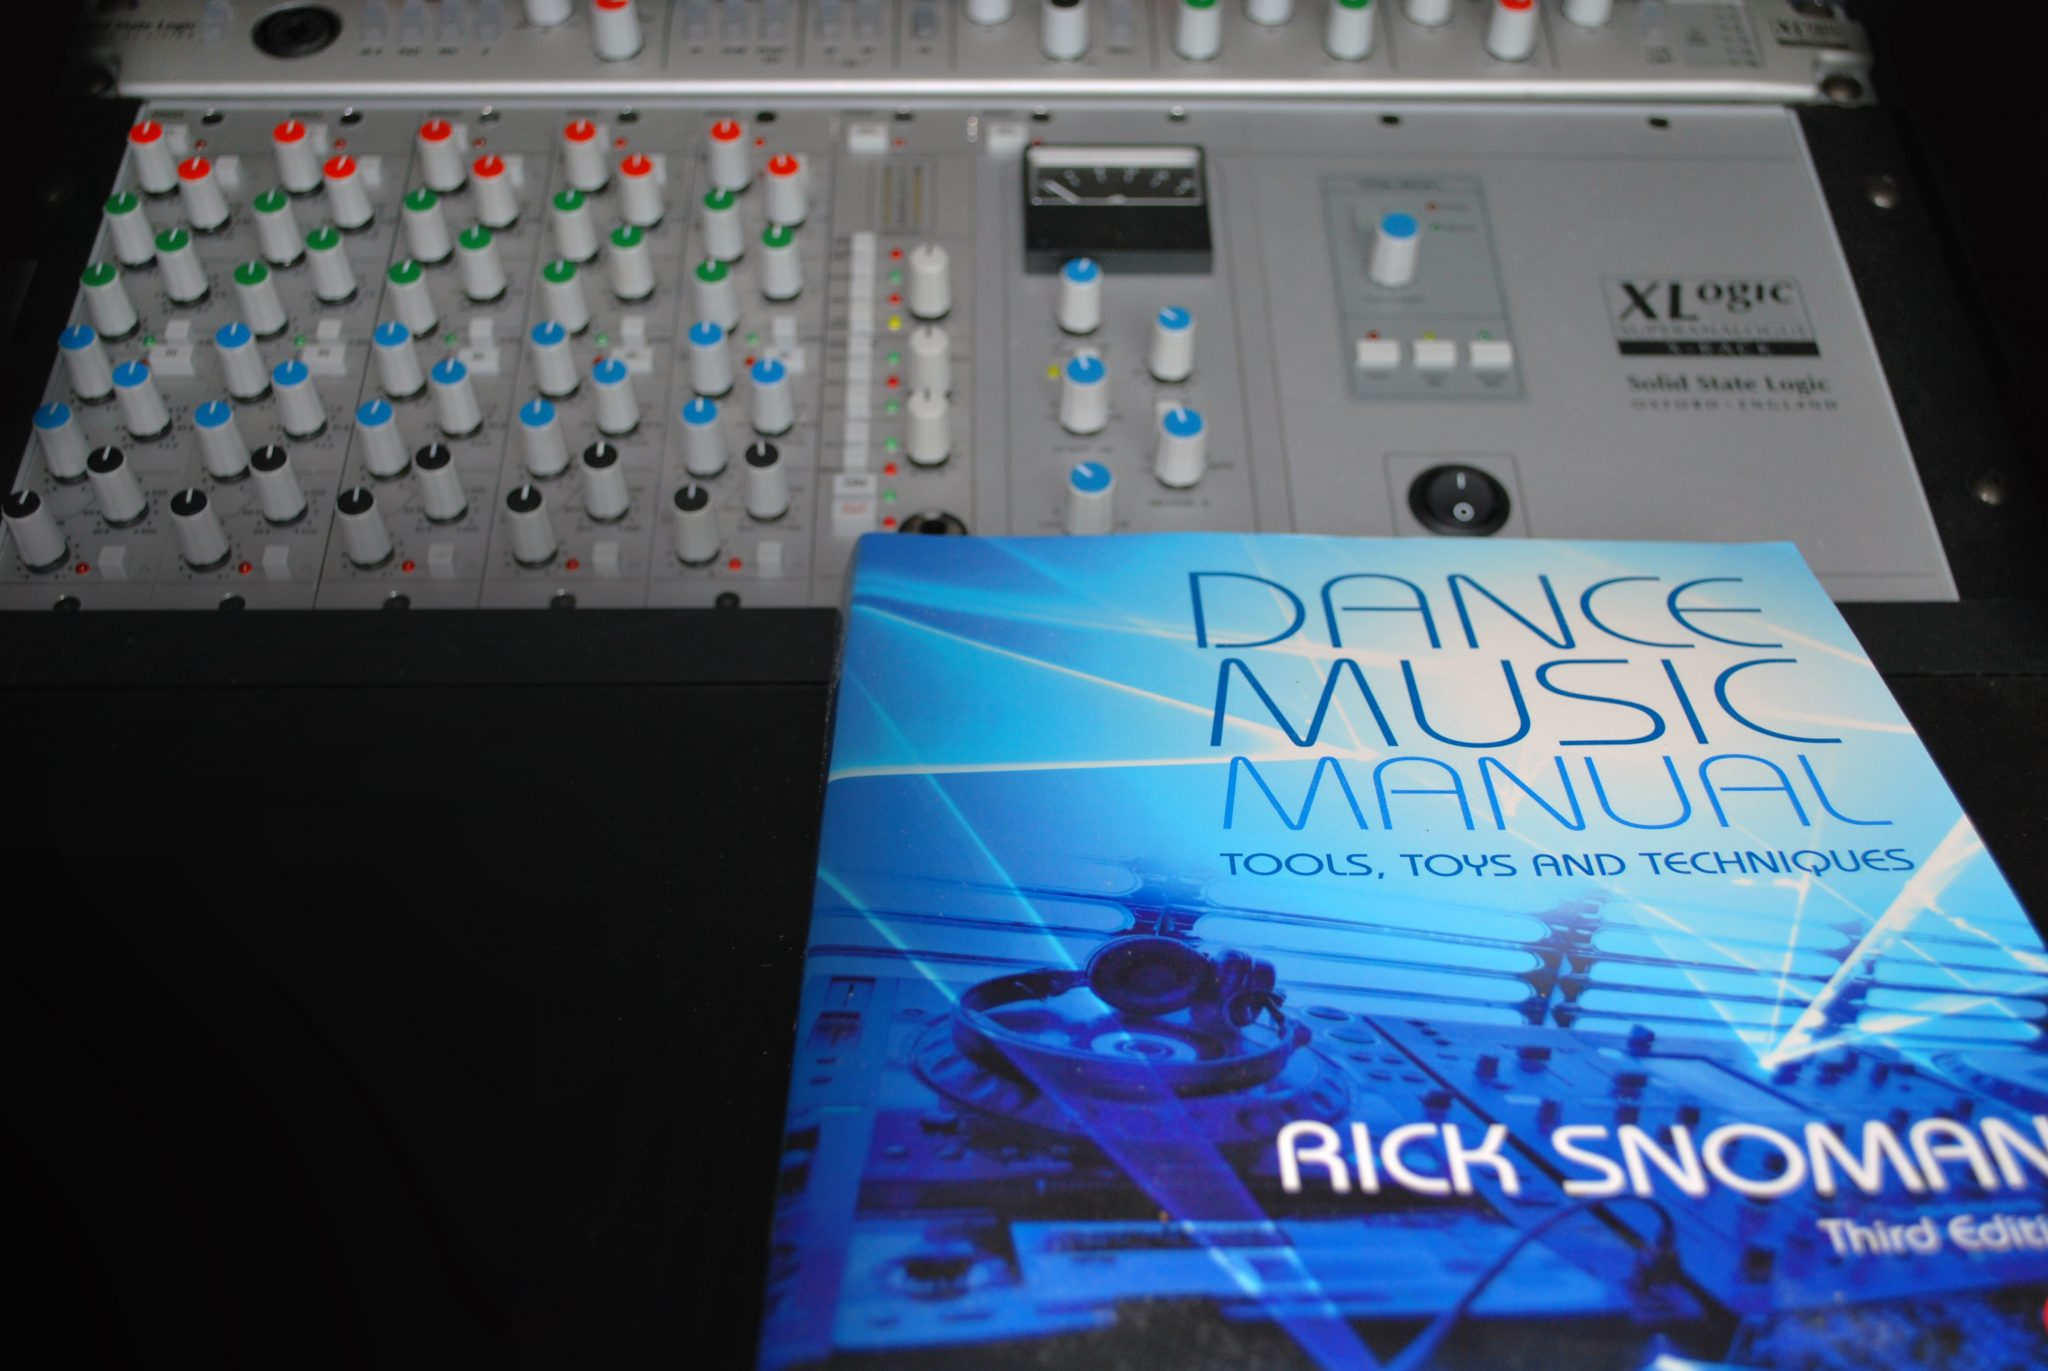 rick snoman dance music manual volume 2